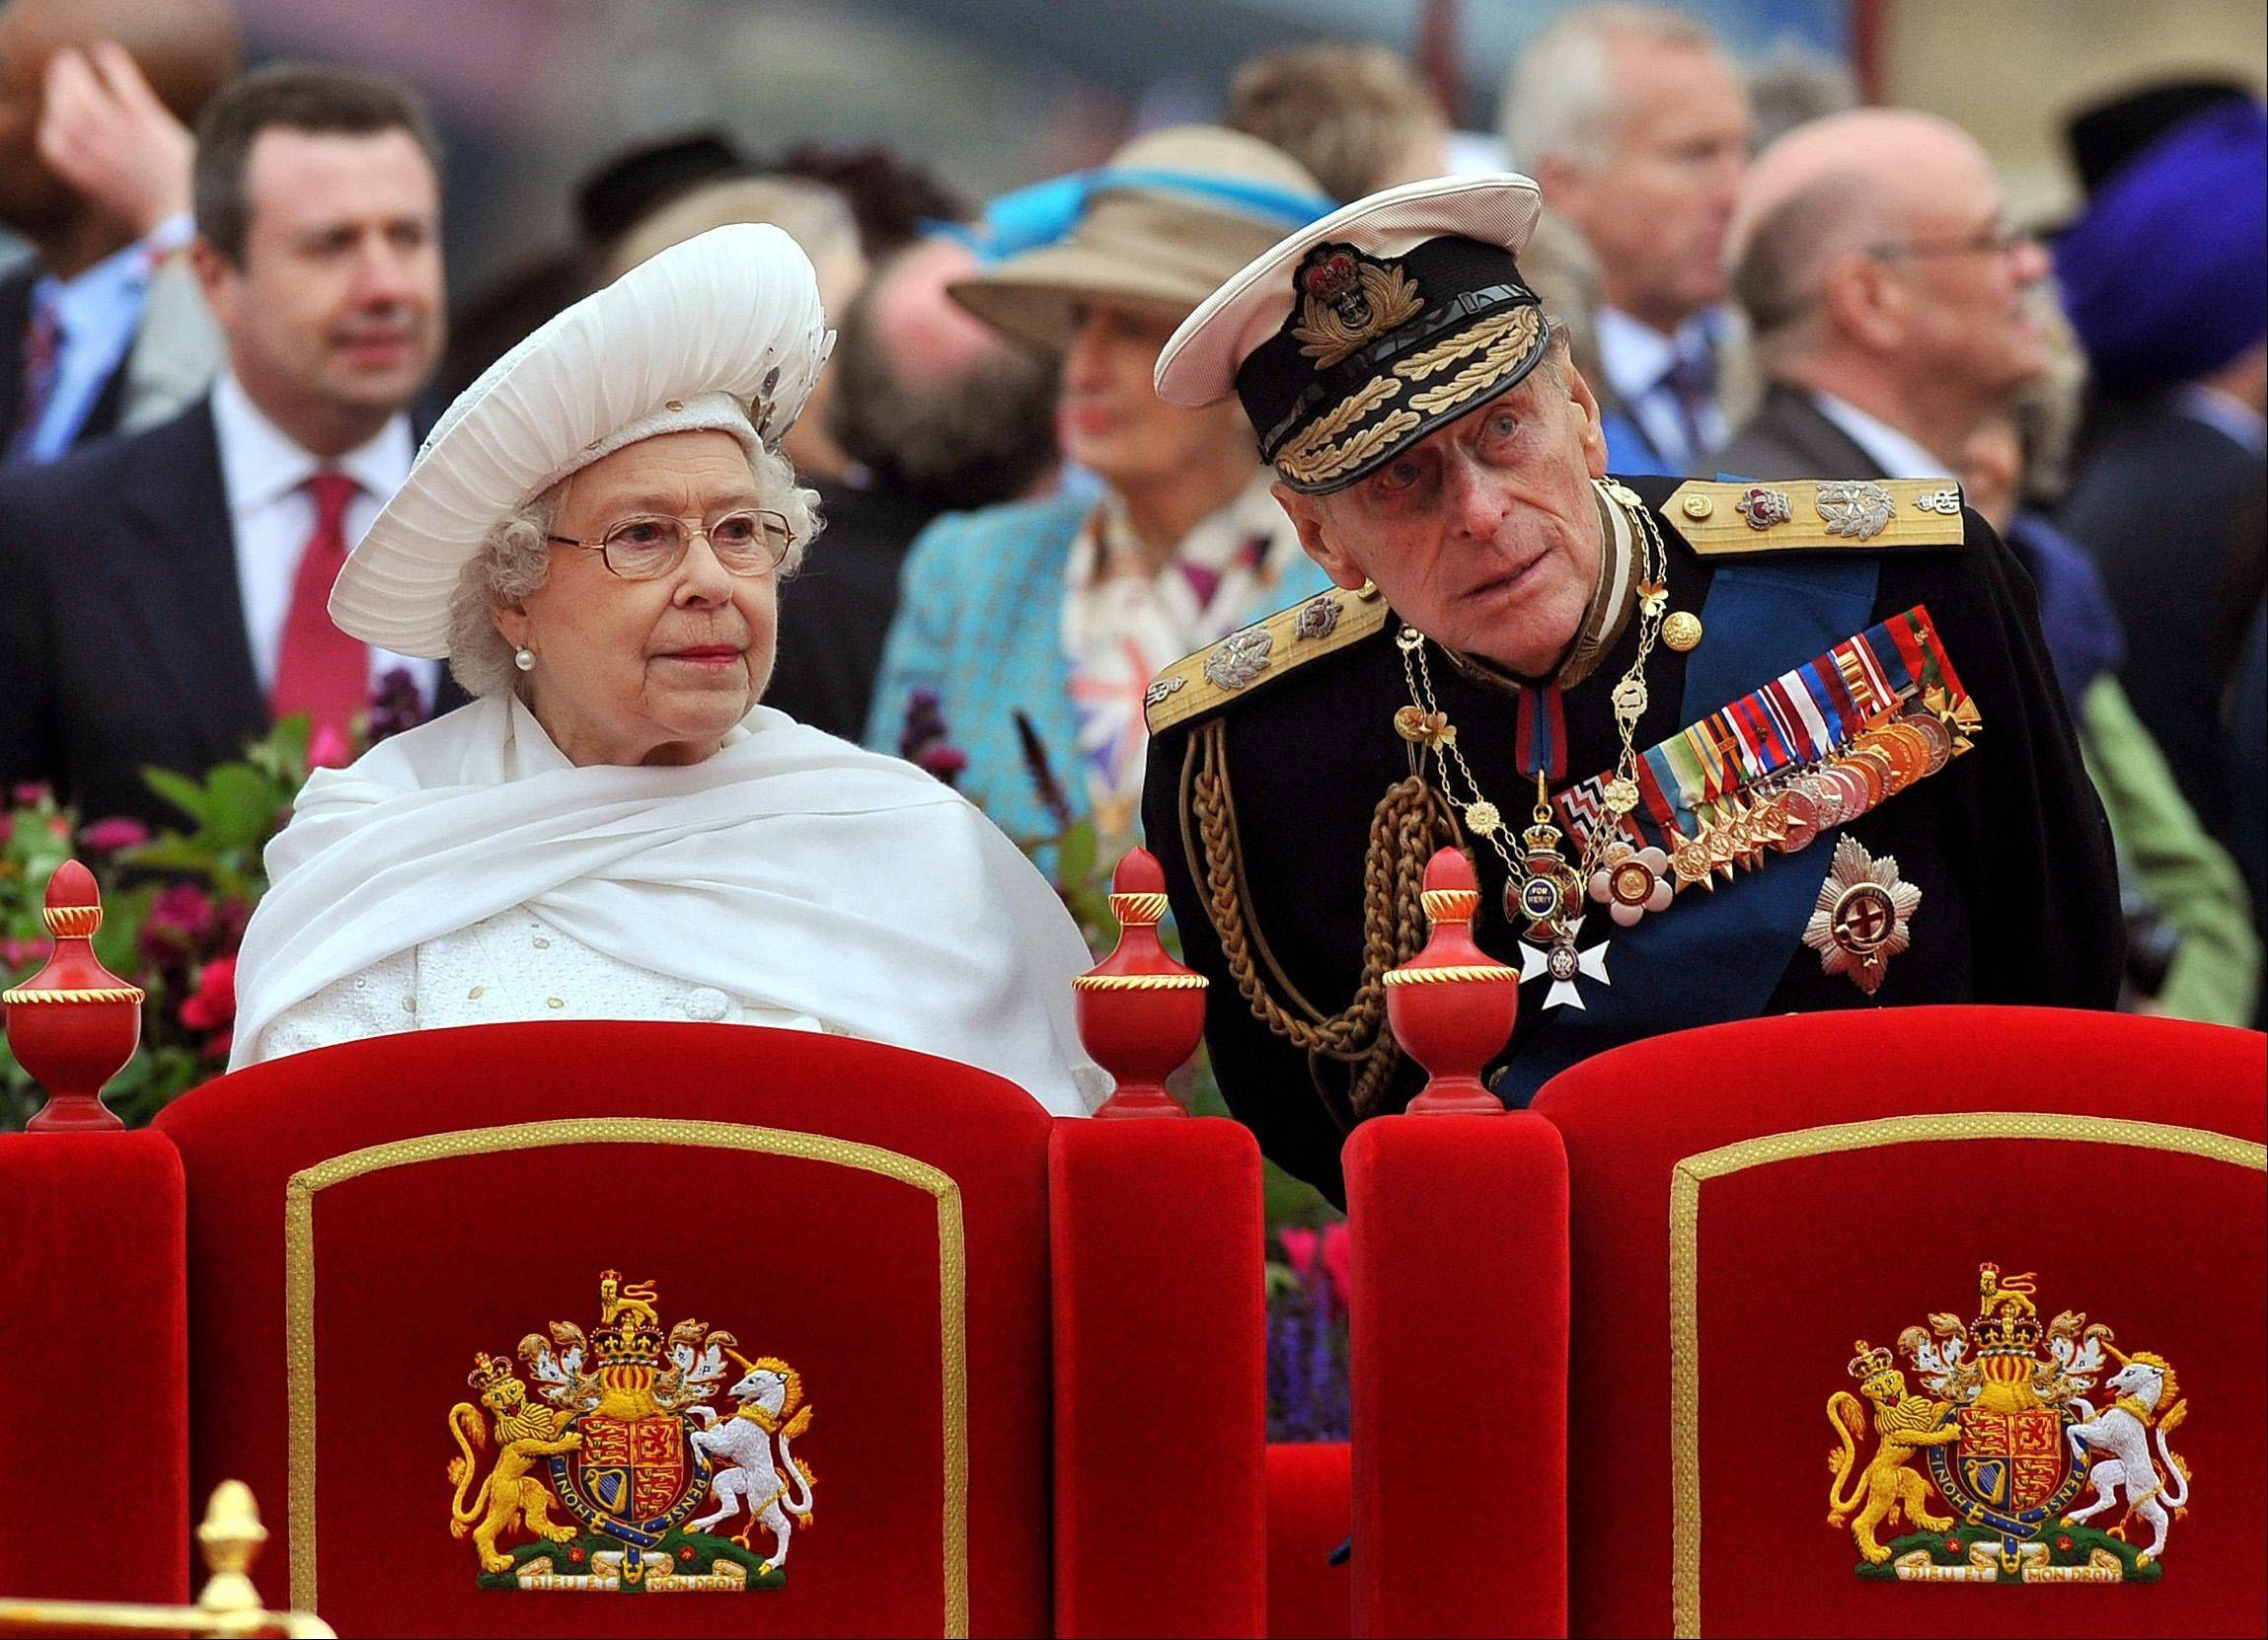 A Sunday June 3, 2012 photo from files showing Britain's Queen Elizabeth II, and her husband Prince Philip watching the proceedings from the royal barge during the Diamond Jubilee Pageant on the River Thames in London. Buckingham Palace says Prince Philip, husband of Queen Elizabeth II, has been hospitalized with a bladder infection. The 90-year-old prince has been taking part in celebrations of the queen�s Diamond Jubilee.